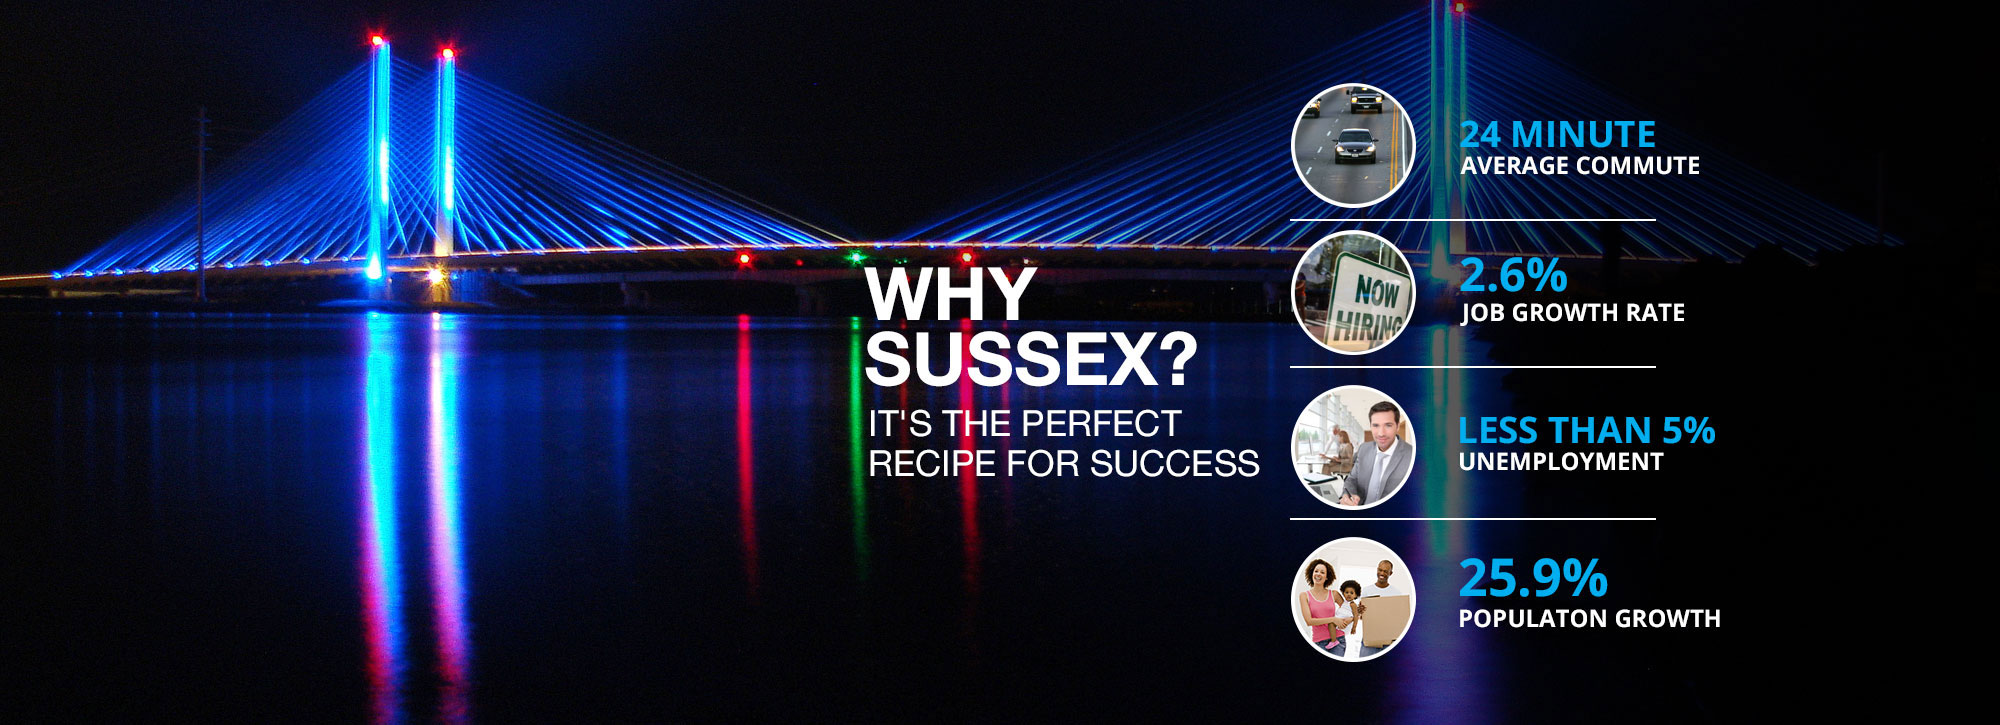 sussex recipe for success photo with bridge at night